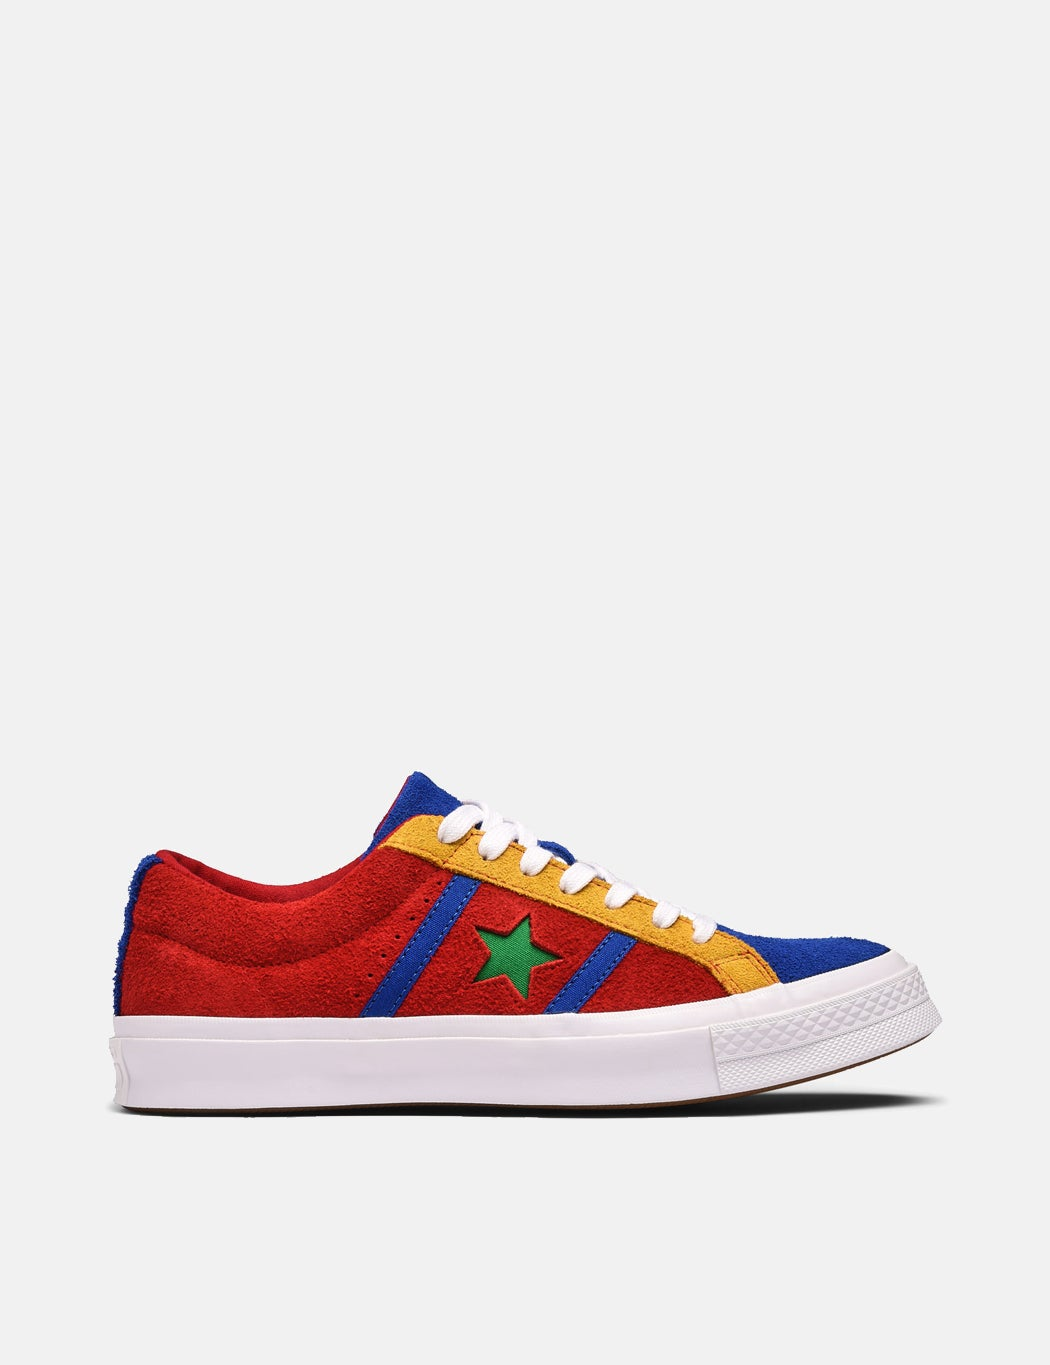 Converse One Star Academy Low Top (164393C) Enamel RedBlueWhite